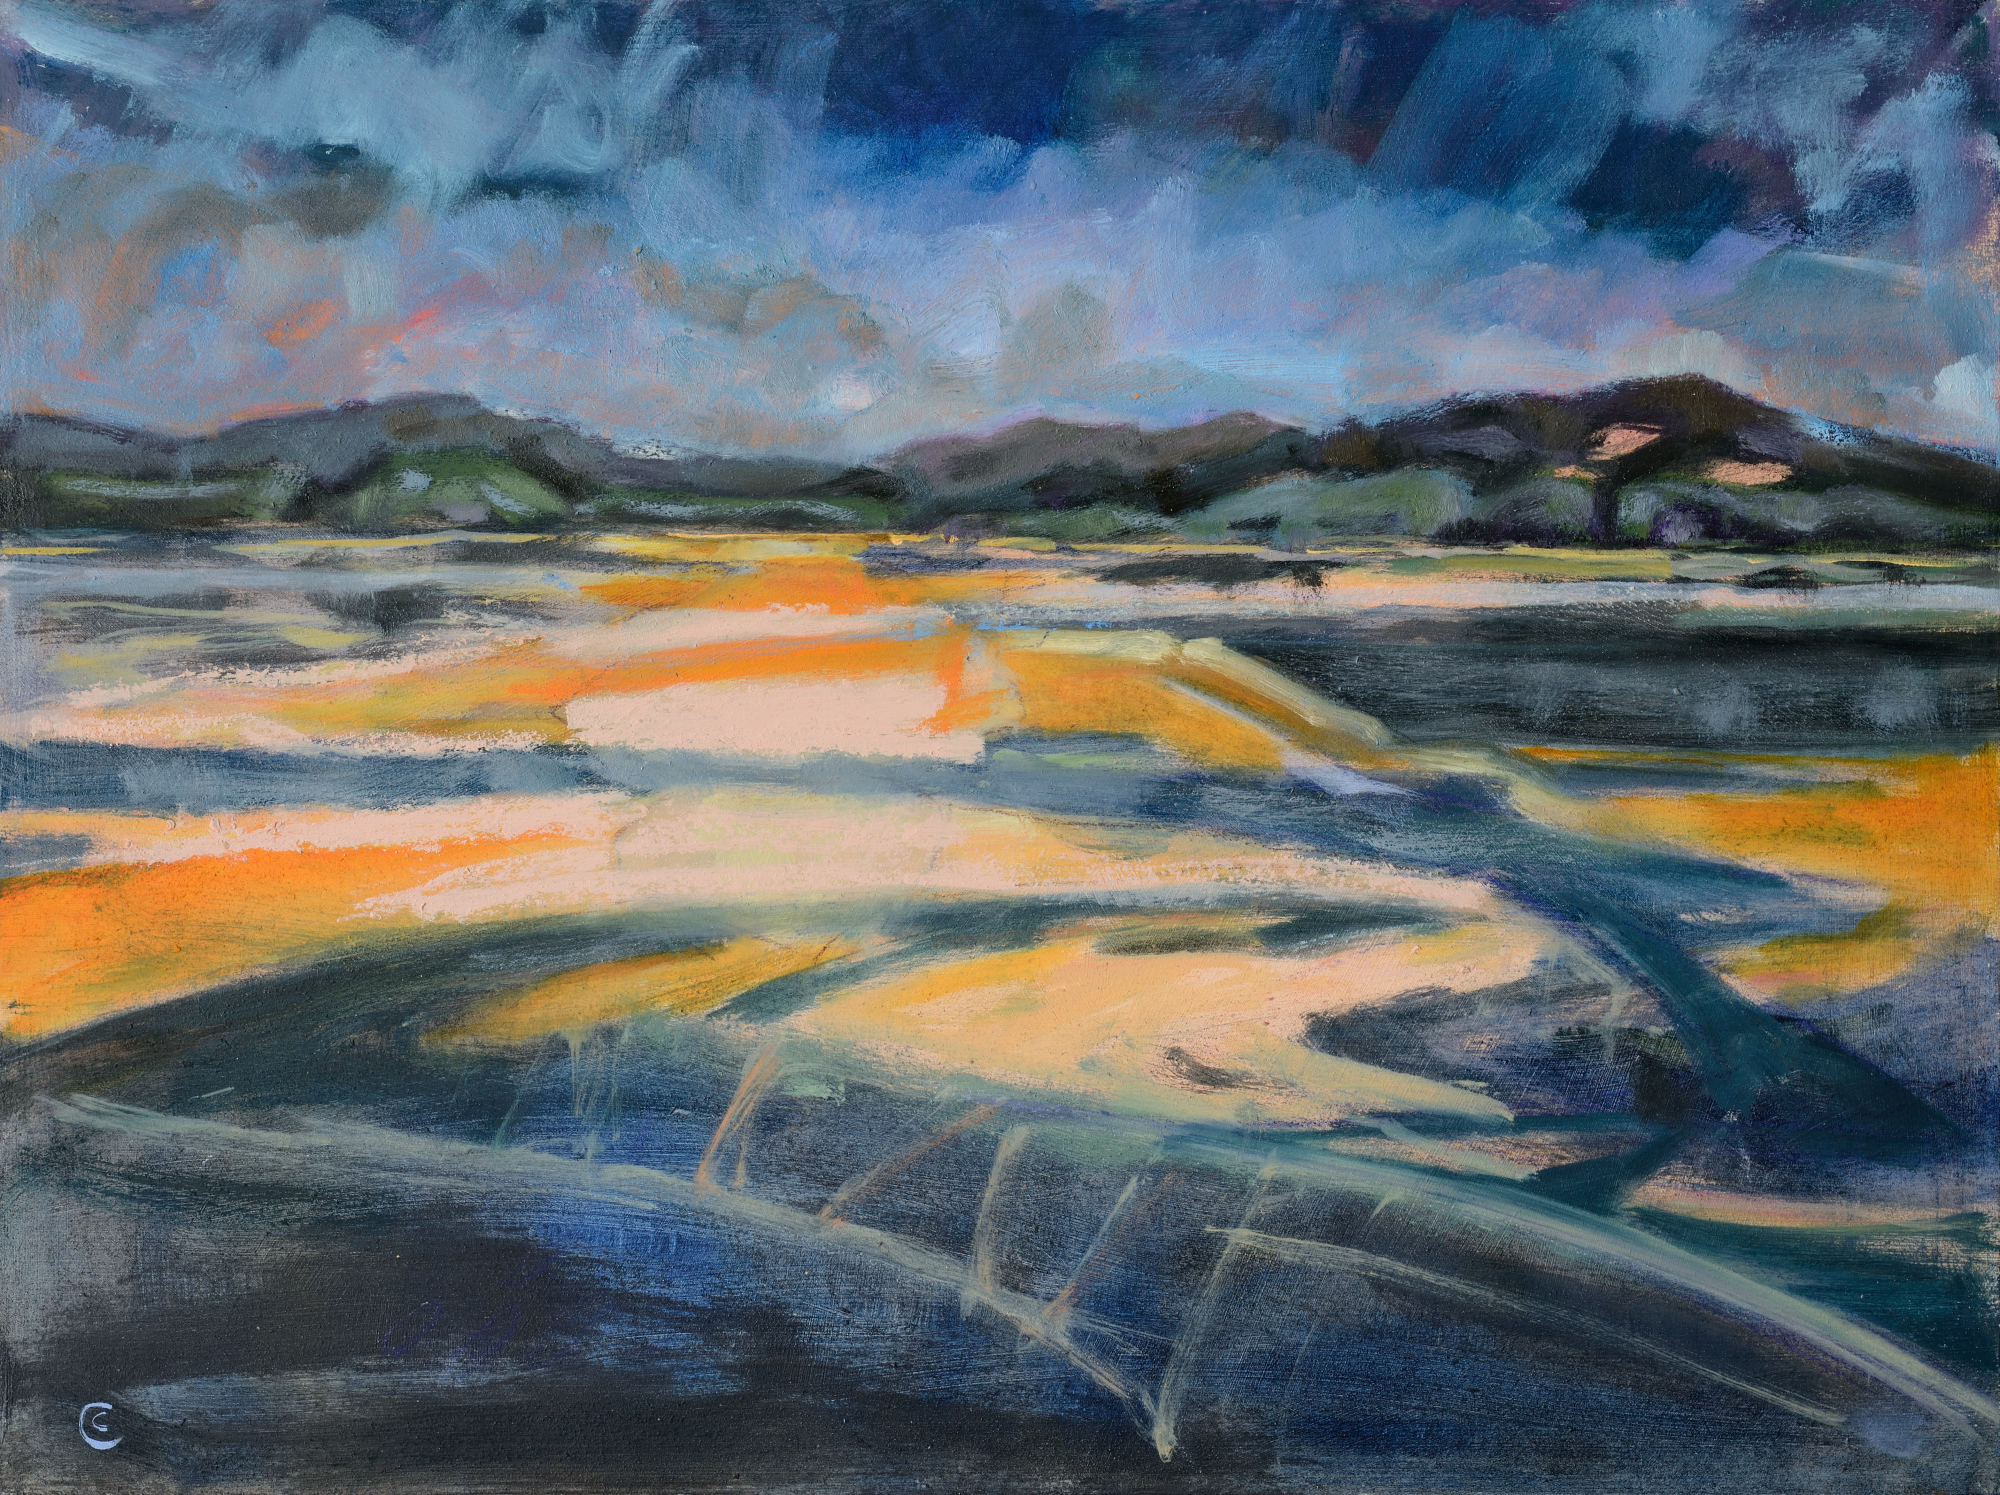 a photograph of an oil painting title 'Urr Sunset' by artist Catherine Coulson © 2018 Catherine Coulson